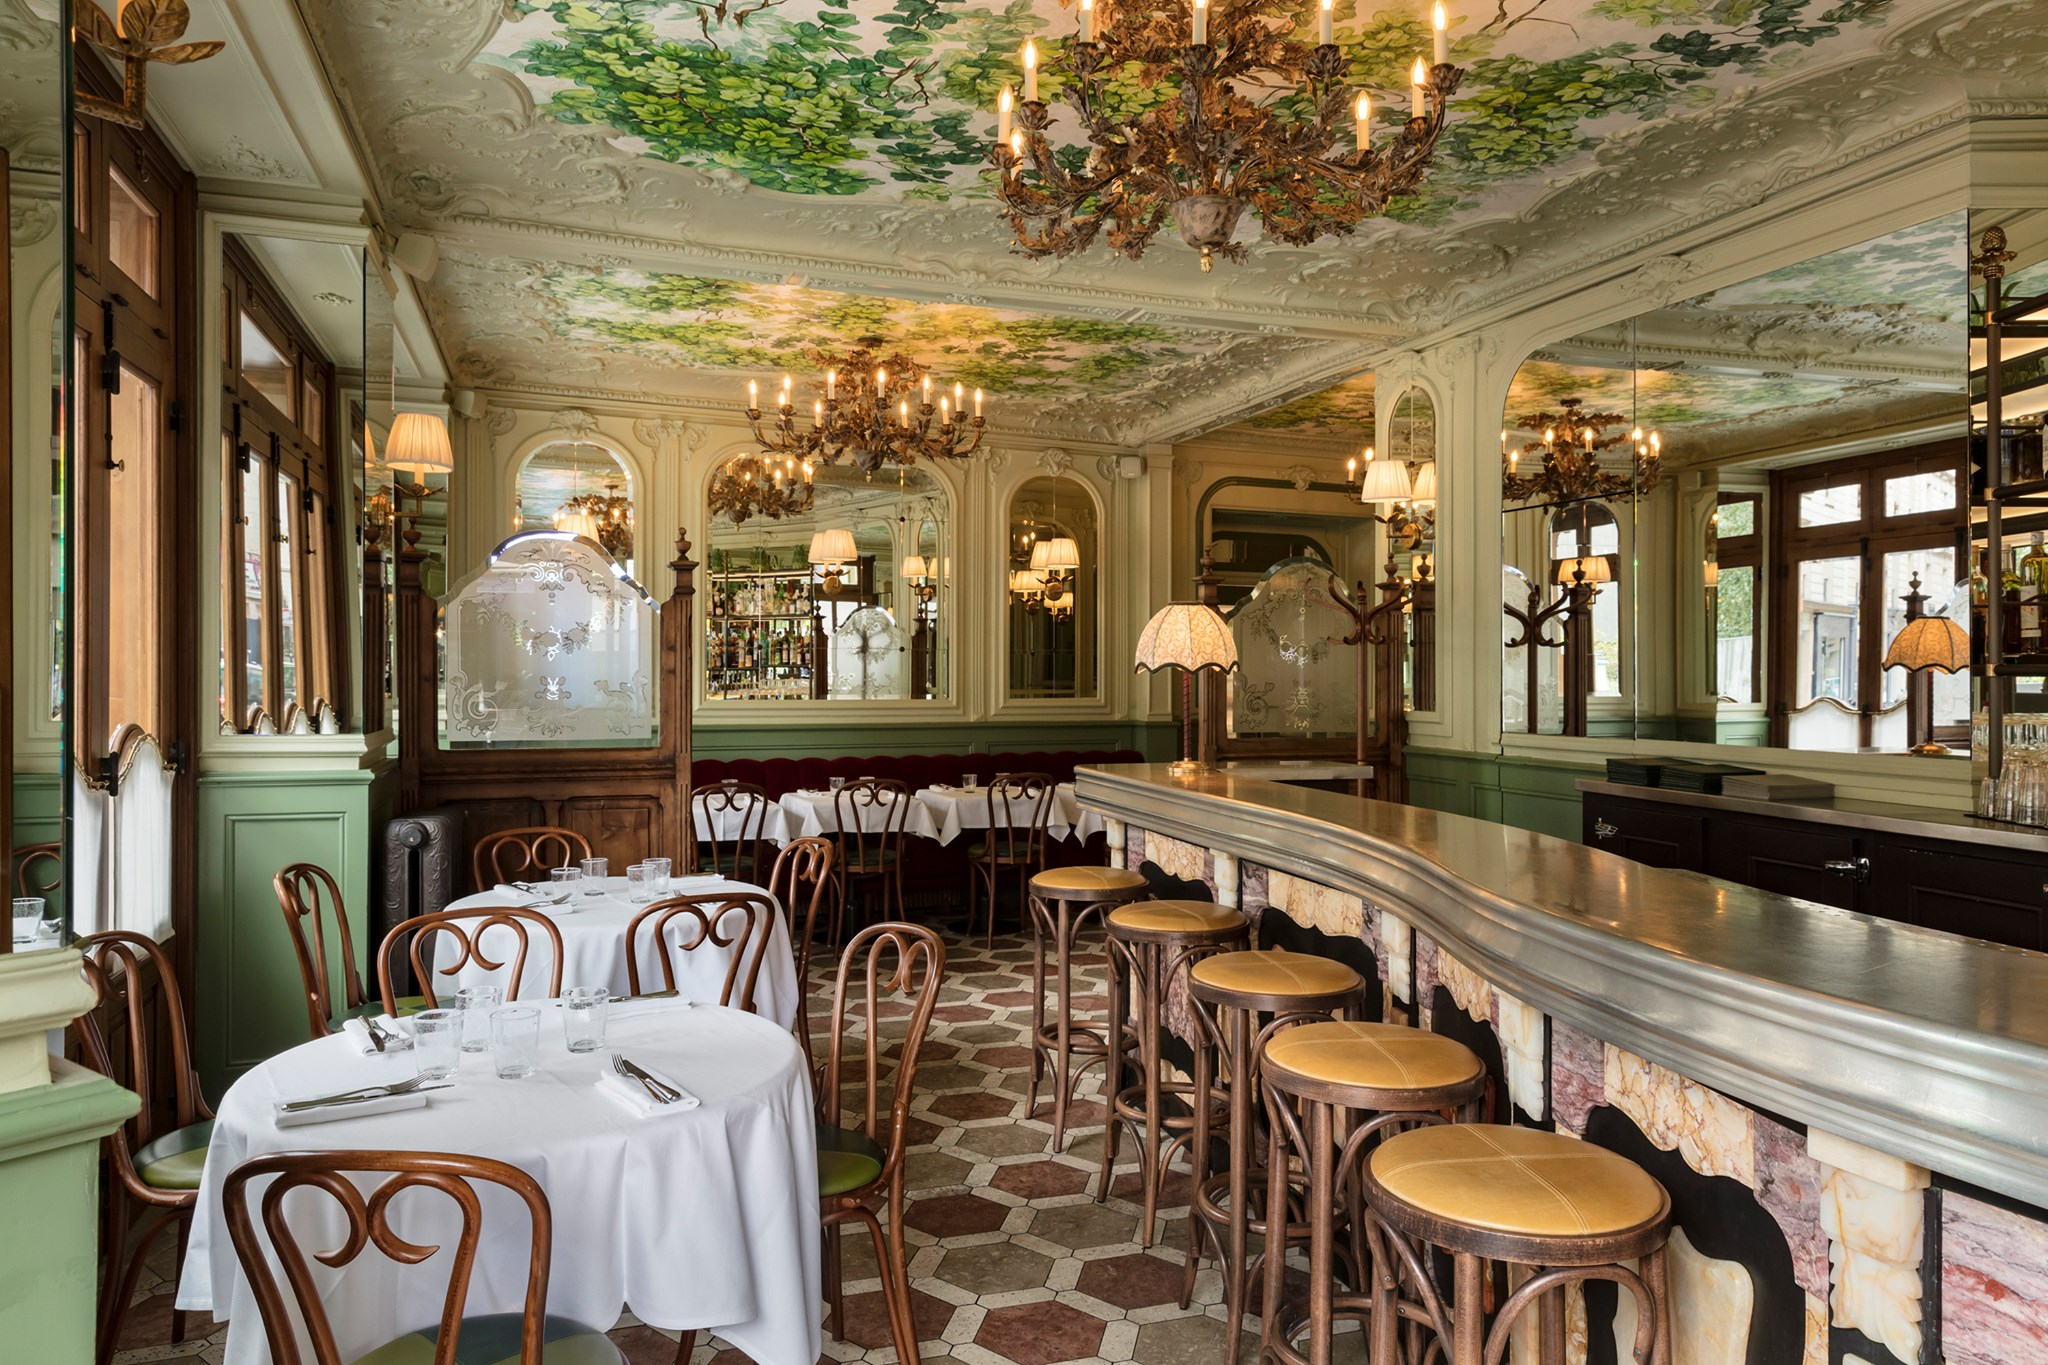 The interior of Le Chardenoux restaurant, decorated with beautiful gold chandeliers and green detailing on the walls and ceiling.